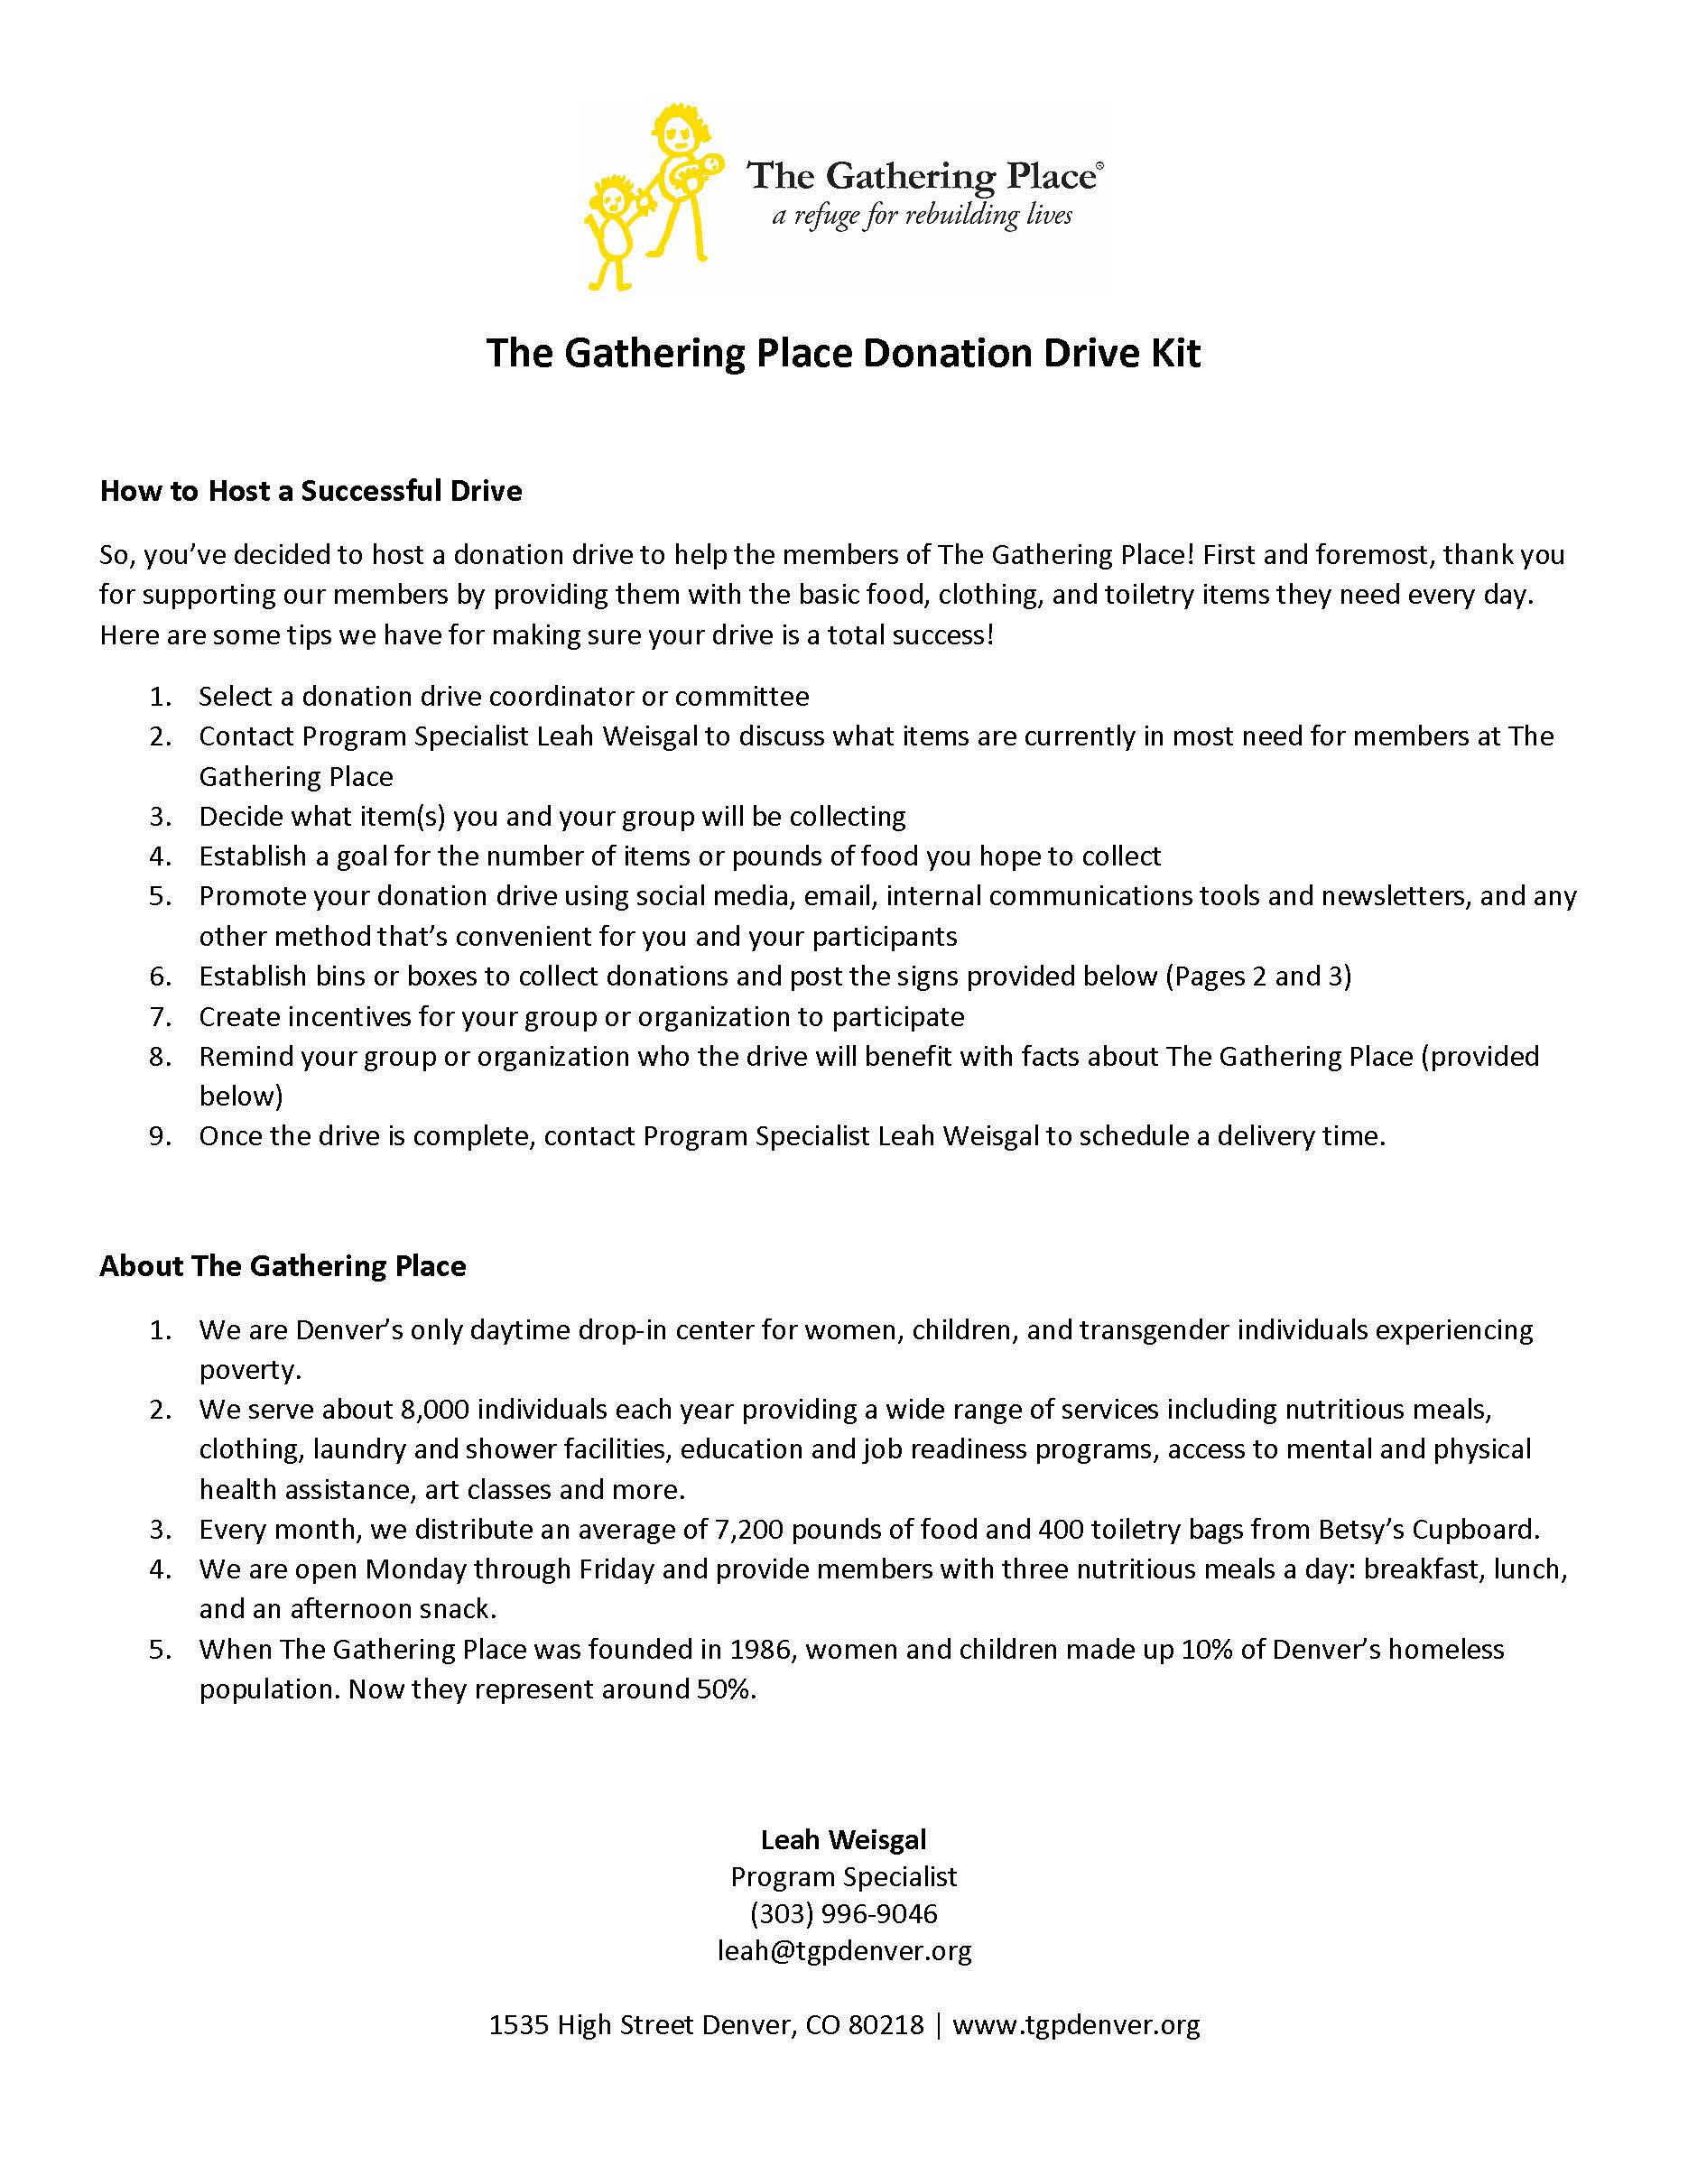 Donate New & Used Items | The Gathering Place